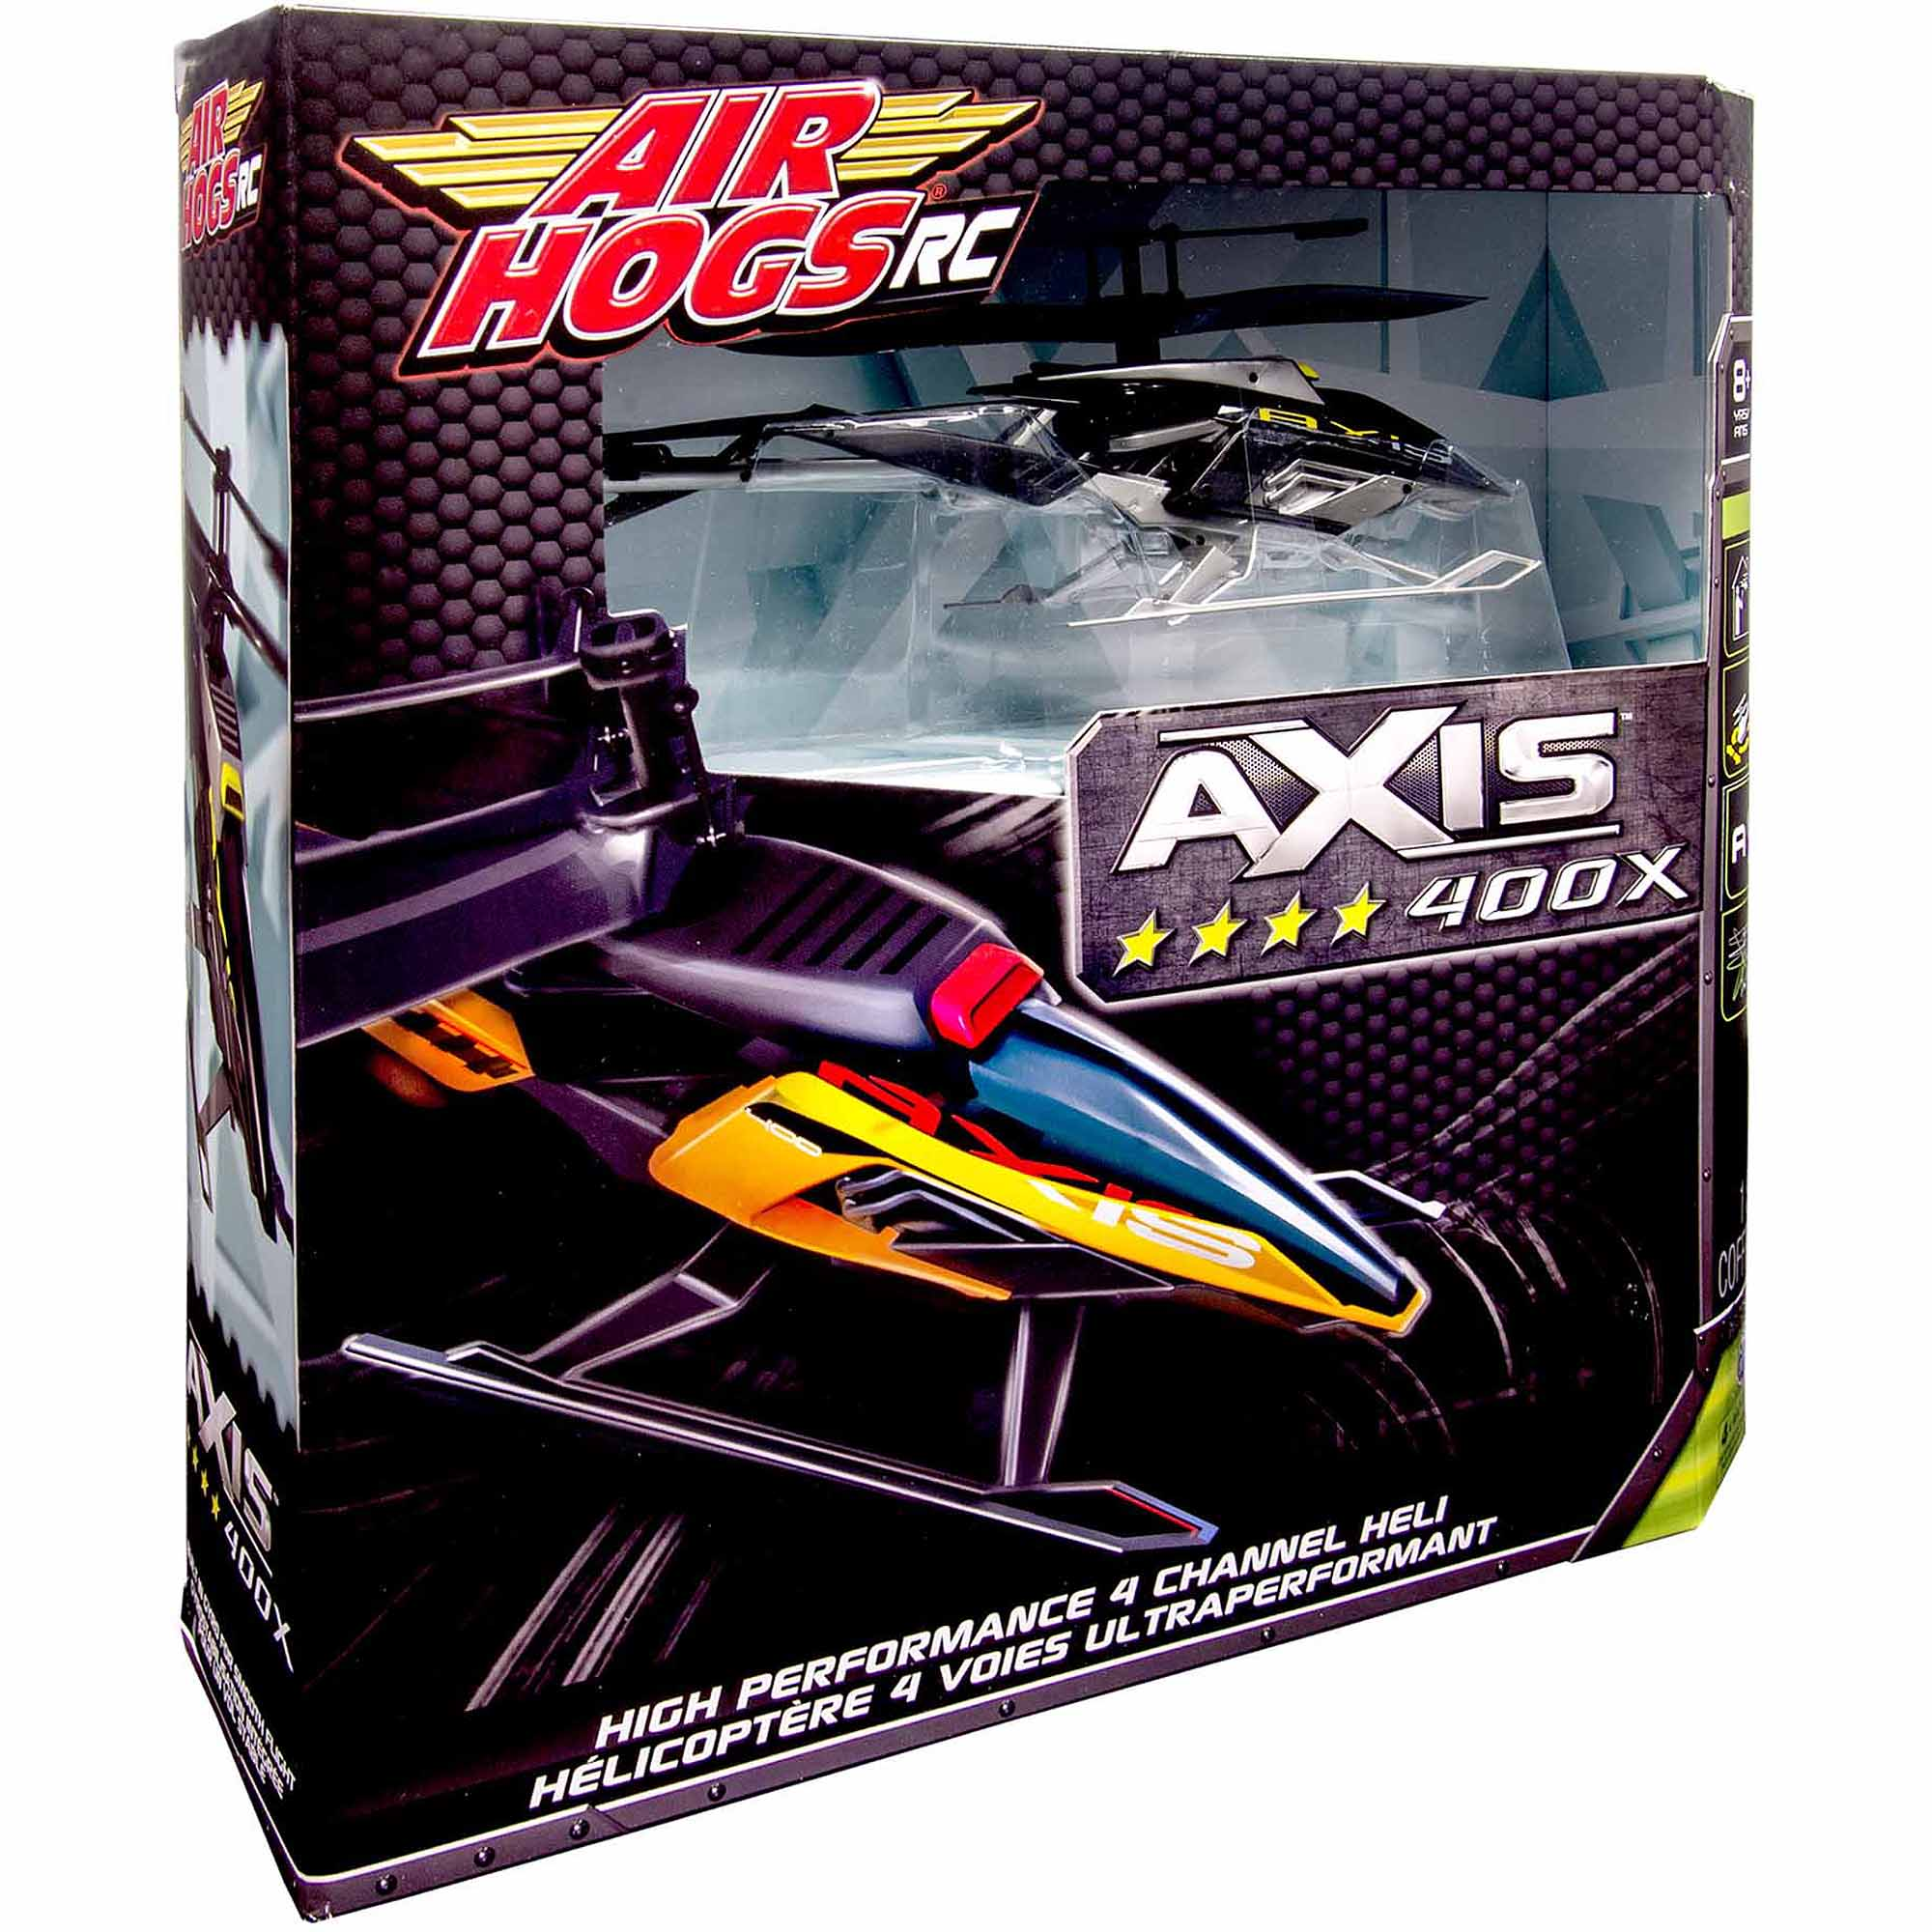 Air Hogs RC Axis 400x R/C Helicopter- in colors Black/Silver & Black/Orange